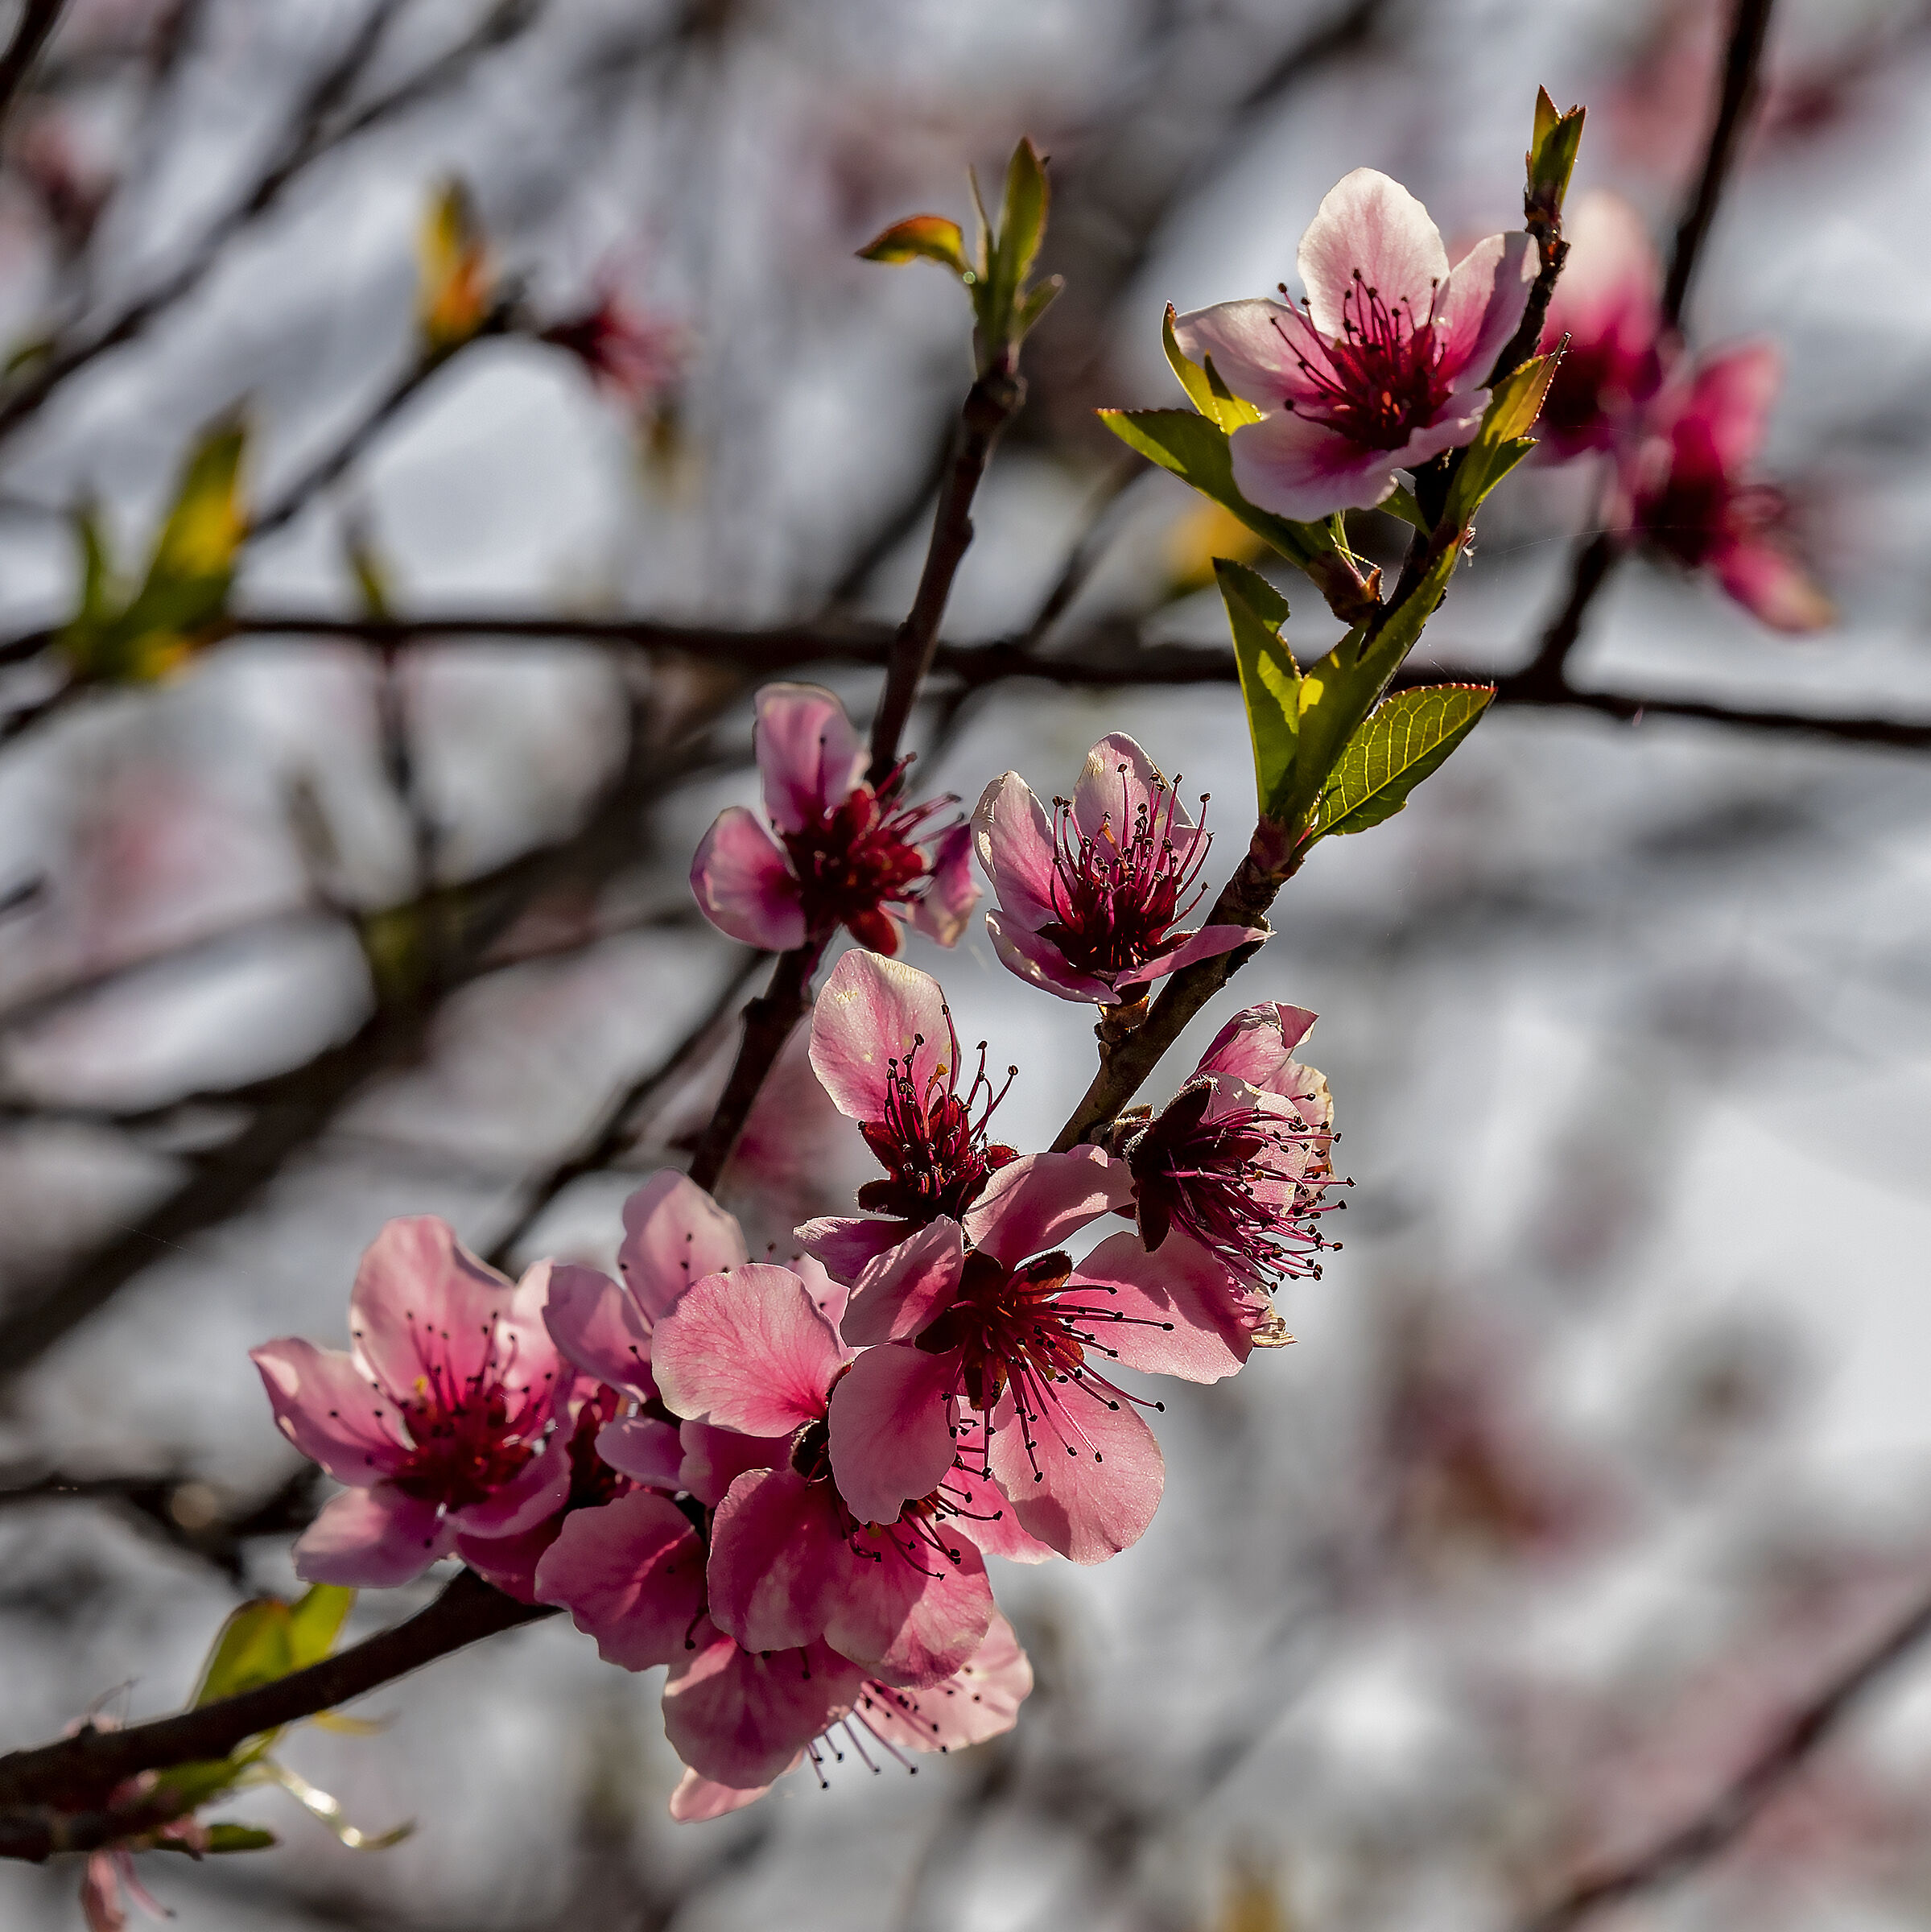 Pink Flowers, peach blossoms, you were there...